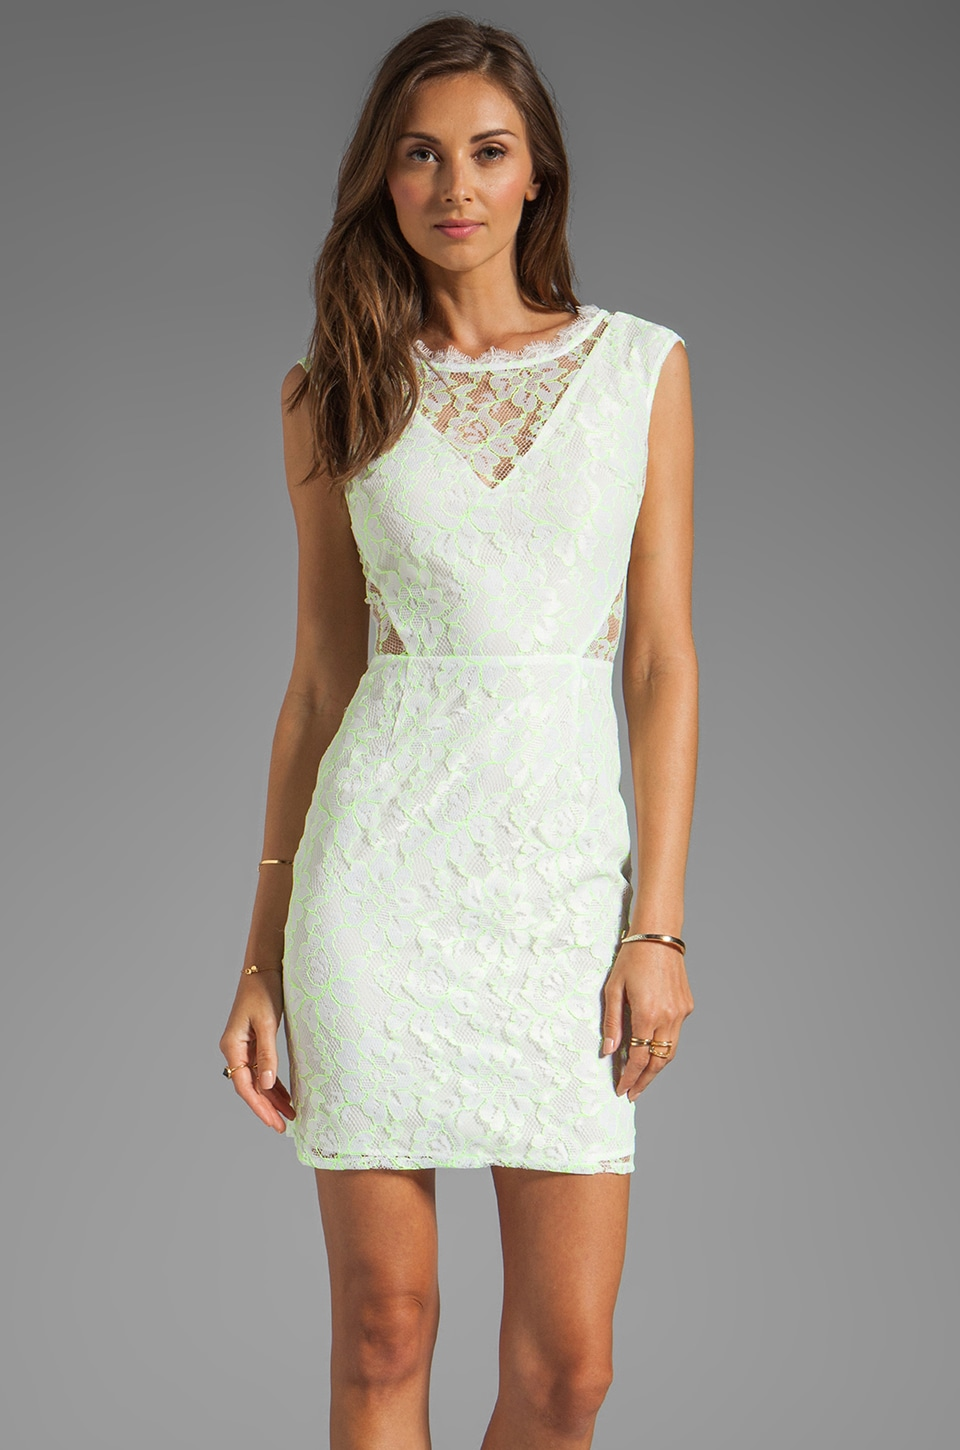 Dolce Vita Trouble Neon Lace Dress in White/Yellow